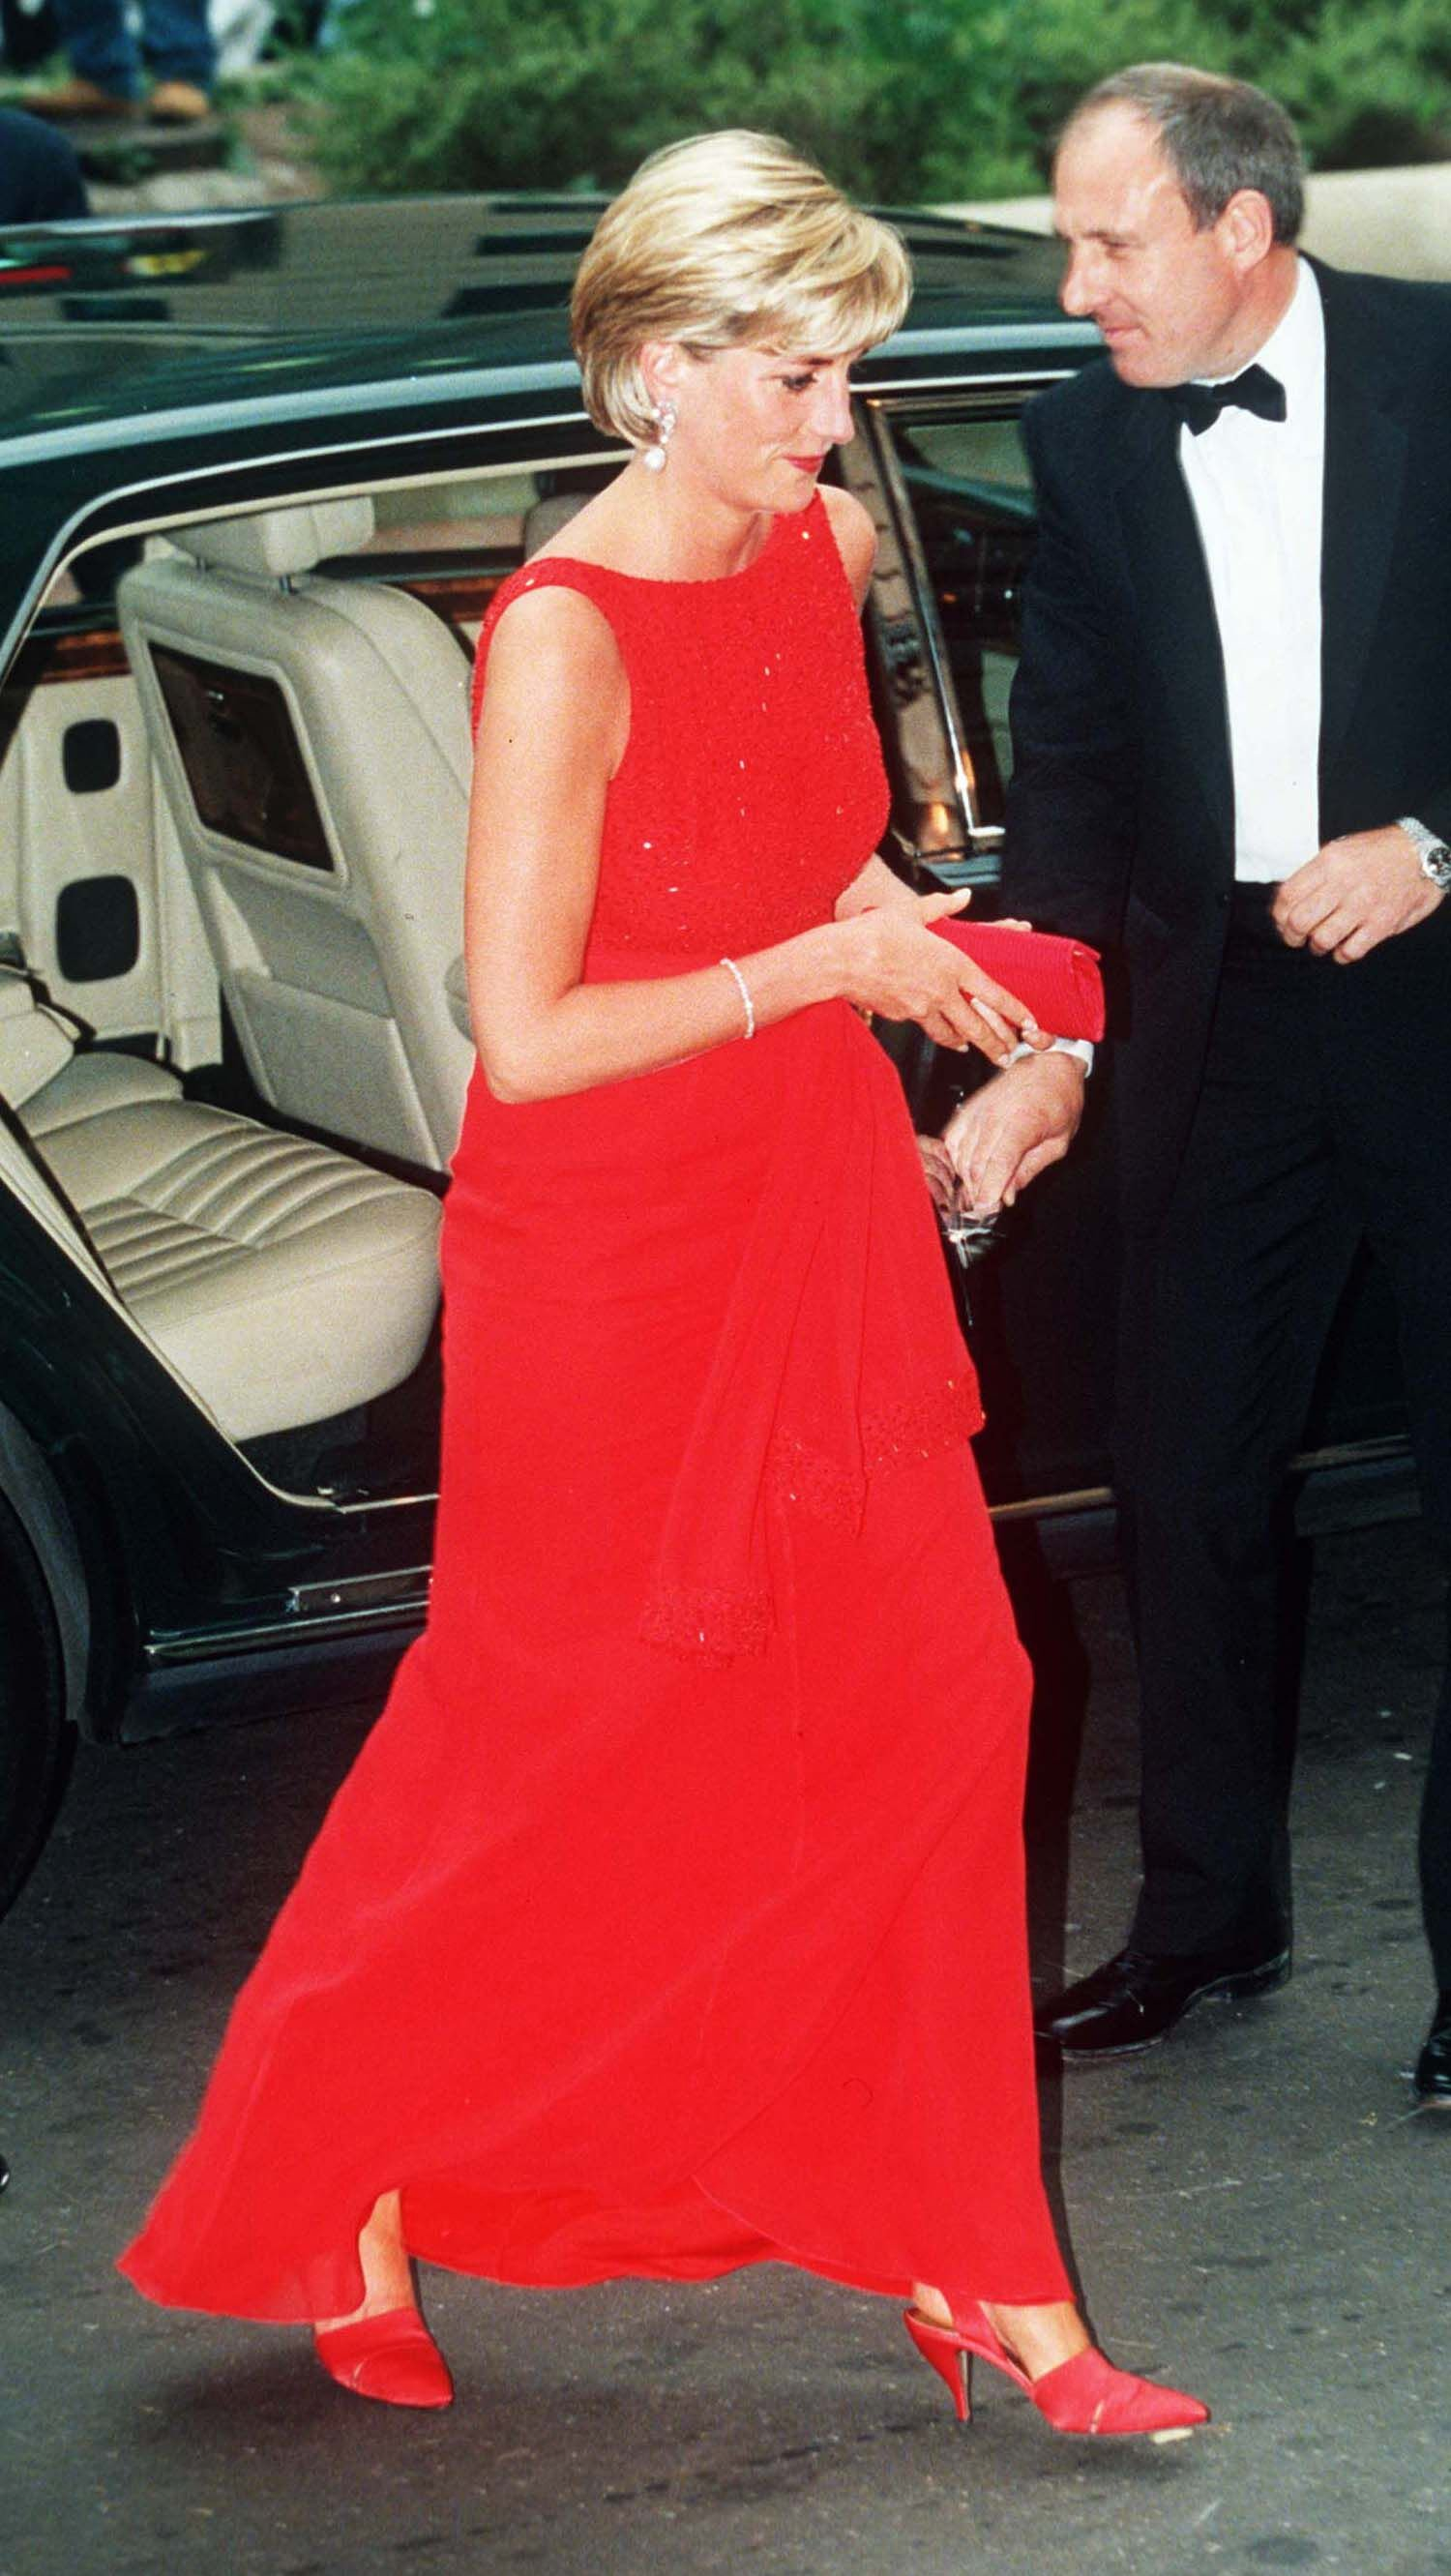 La Princesse Diana sortant d'une voiture. l Source: Getty Images